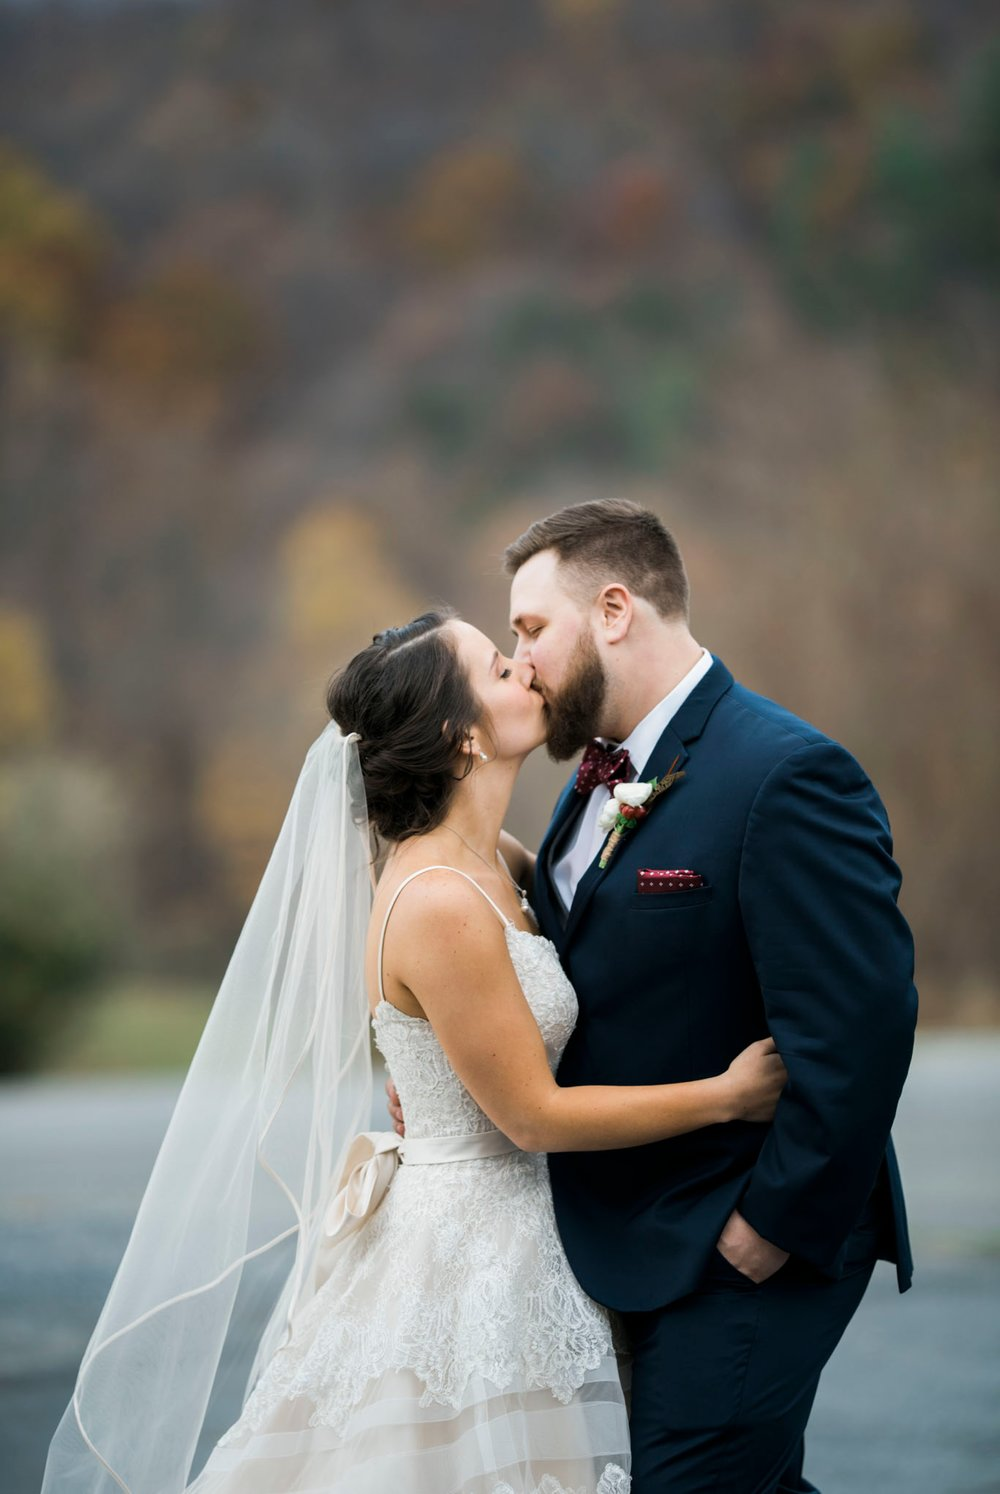 IrvineEstate_LexingtonVA_Wedding_FallWedding_VirginiaWeddingPhotographer 93.jpg